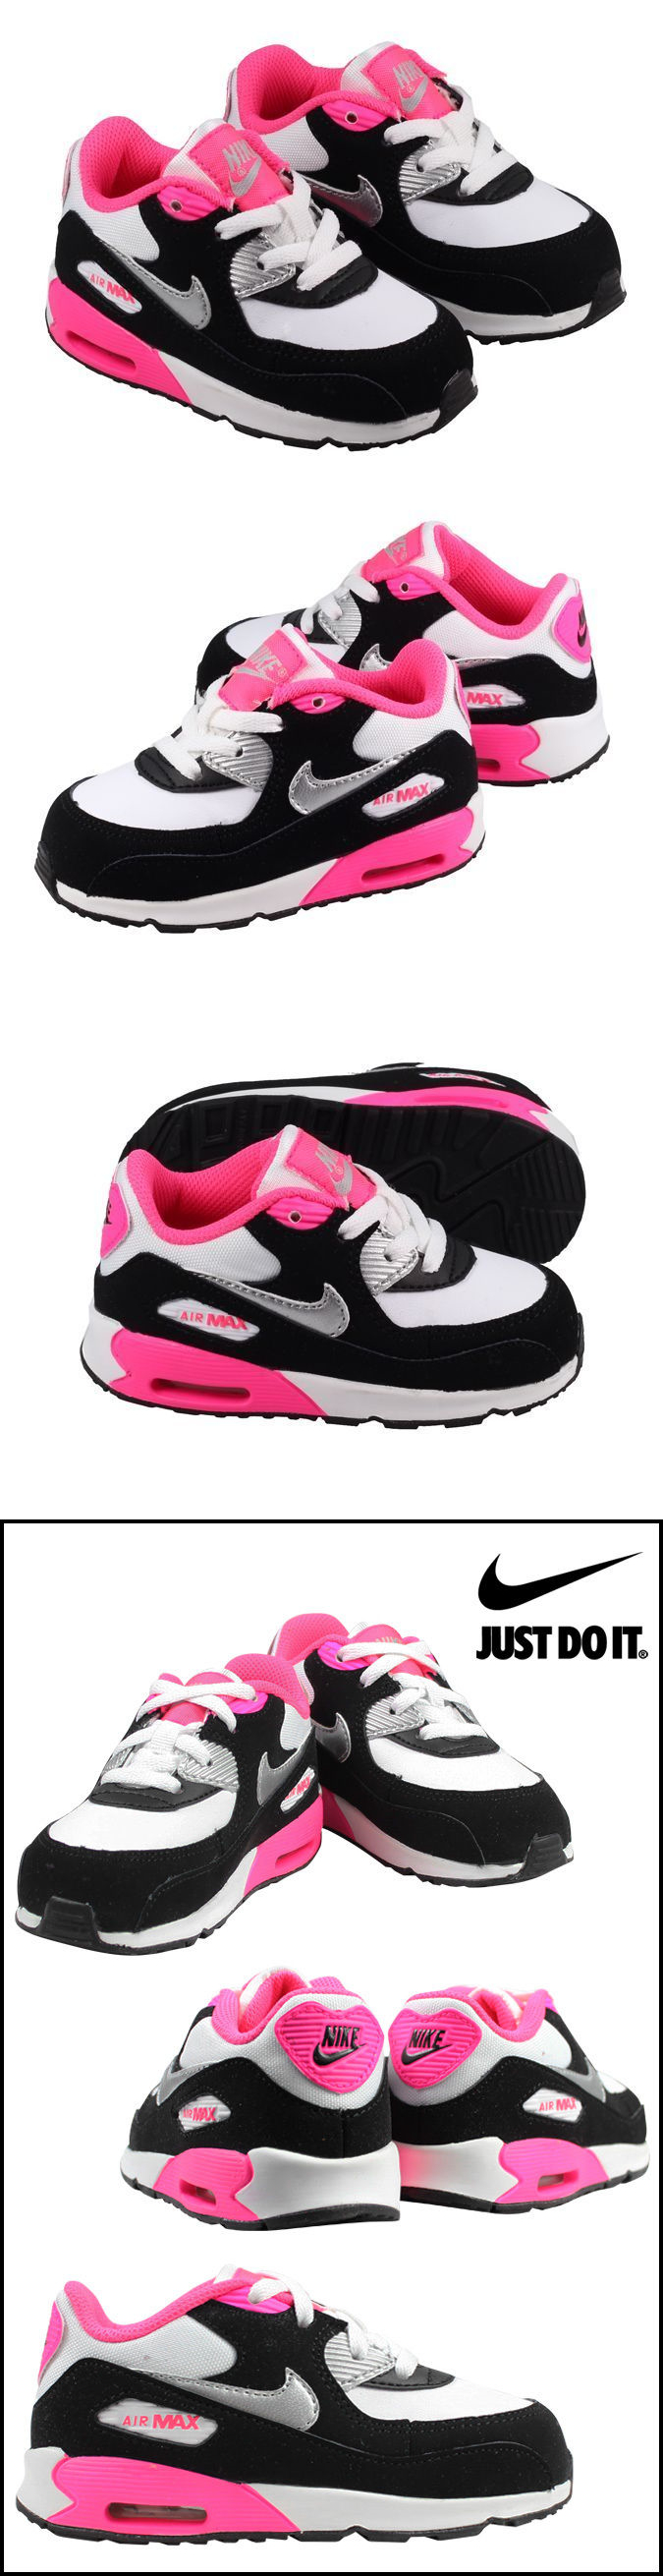 Baby Shoes 147285: Toddler Girls Nike Air Max 90 Sneakers